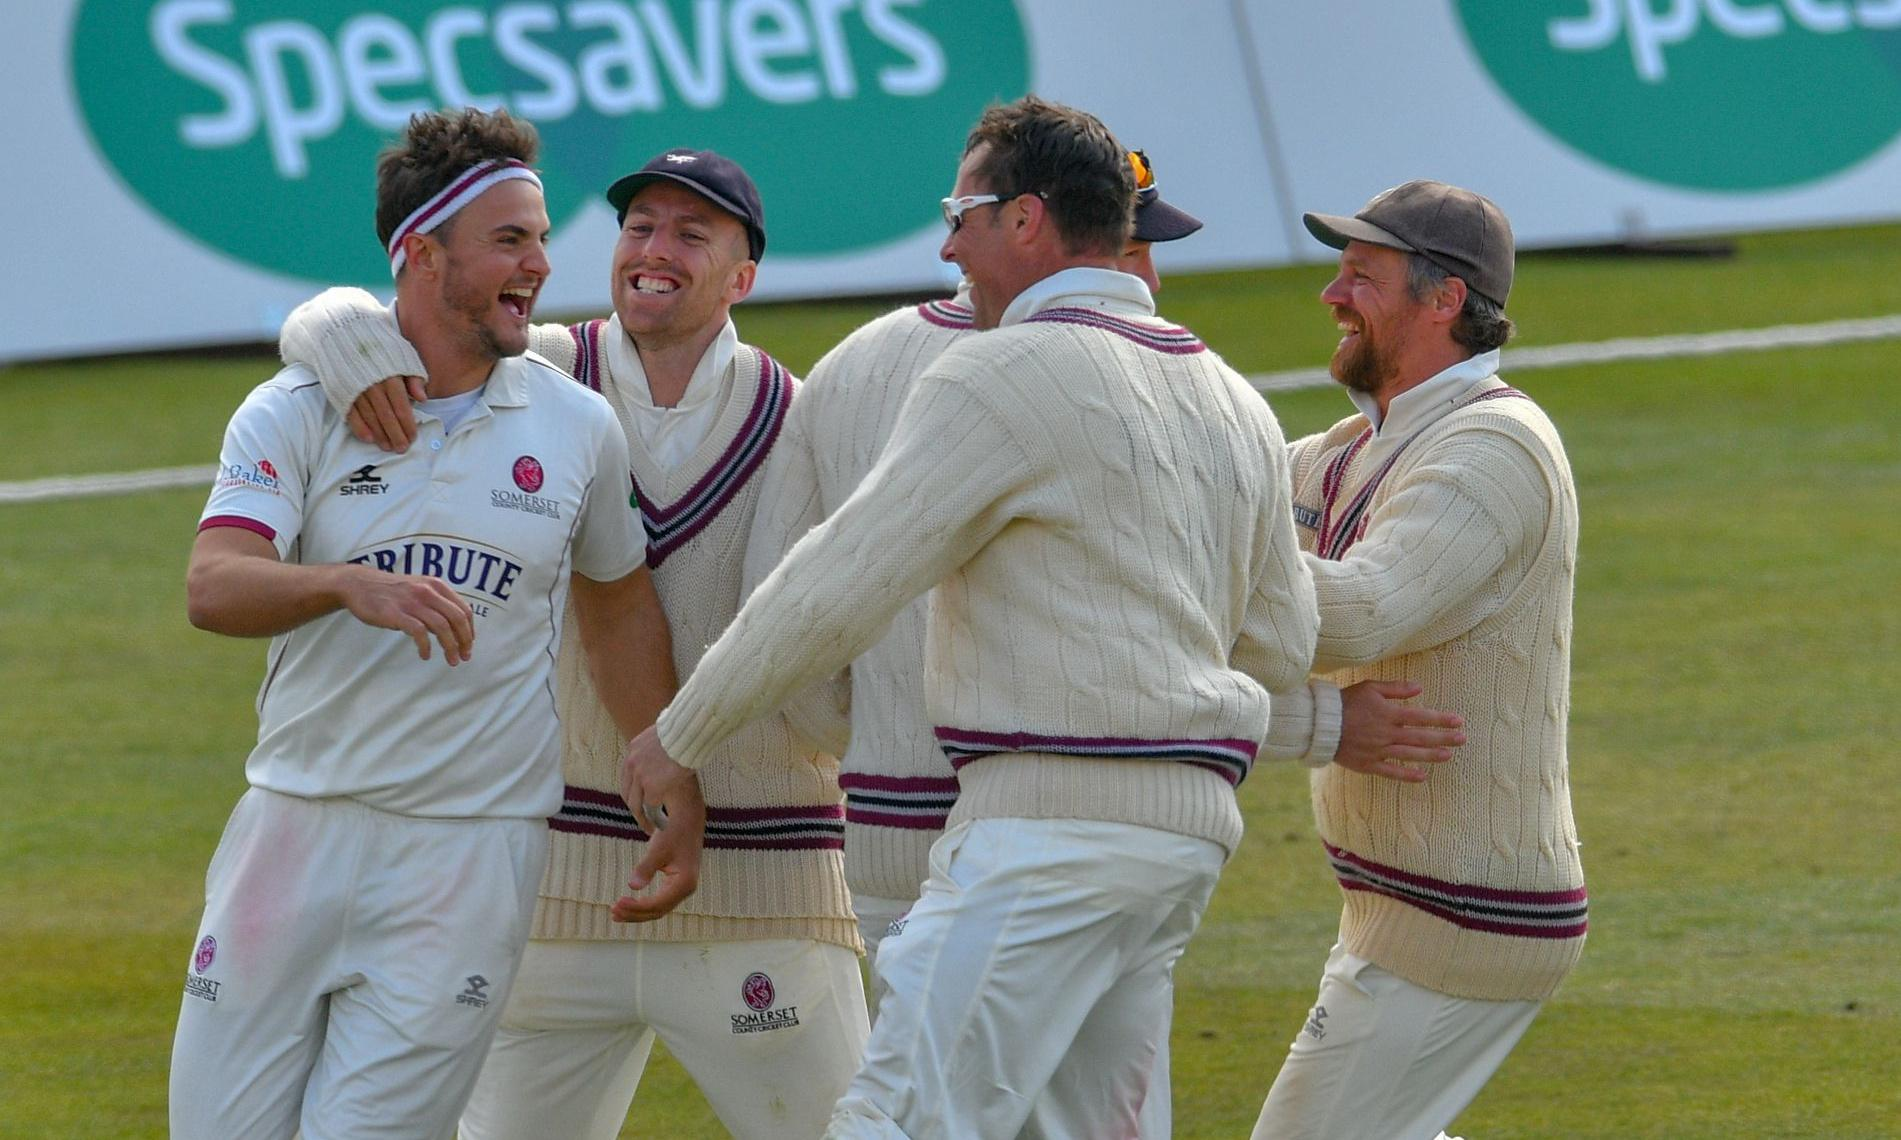 County cricket talking points: Somerset set early pace in title race